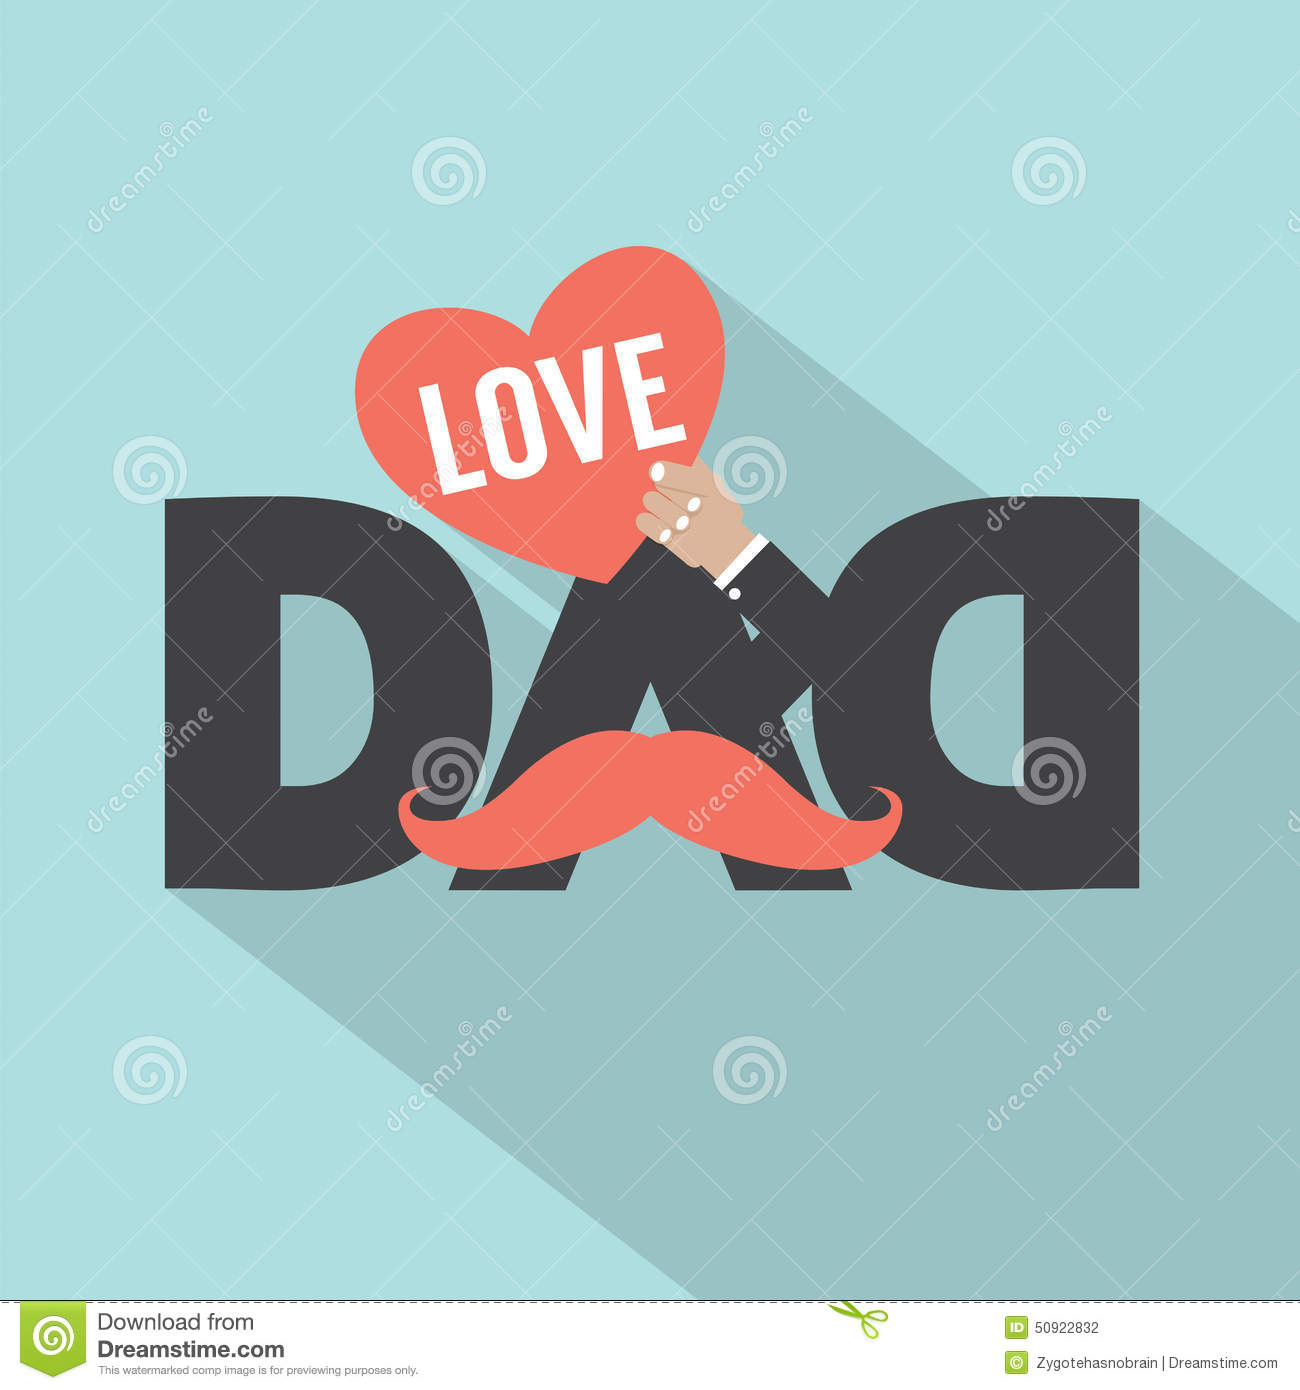 Love Dad Typography Design